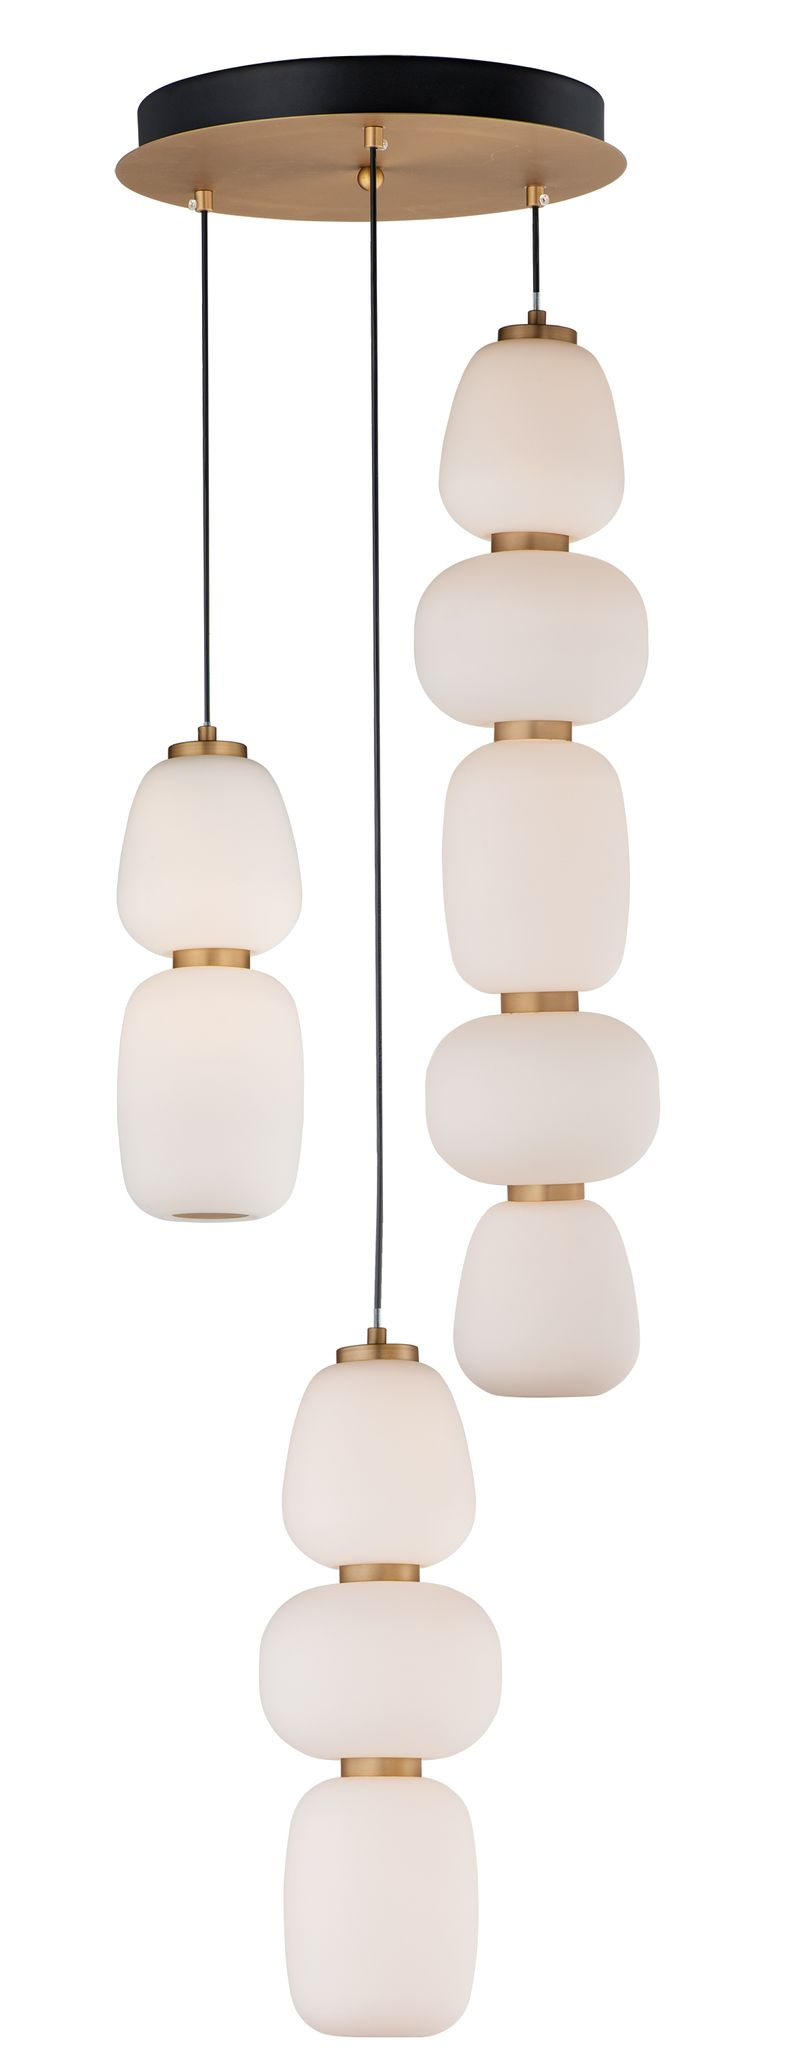 "Soji 15.75"" 3-Light Multi-Light Pendant - Black / Gold"